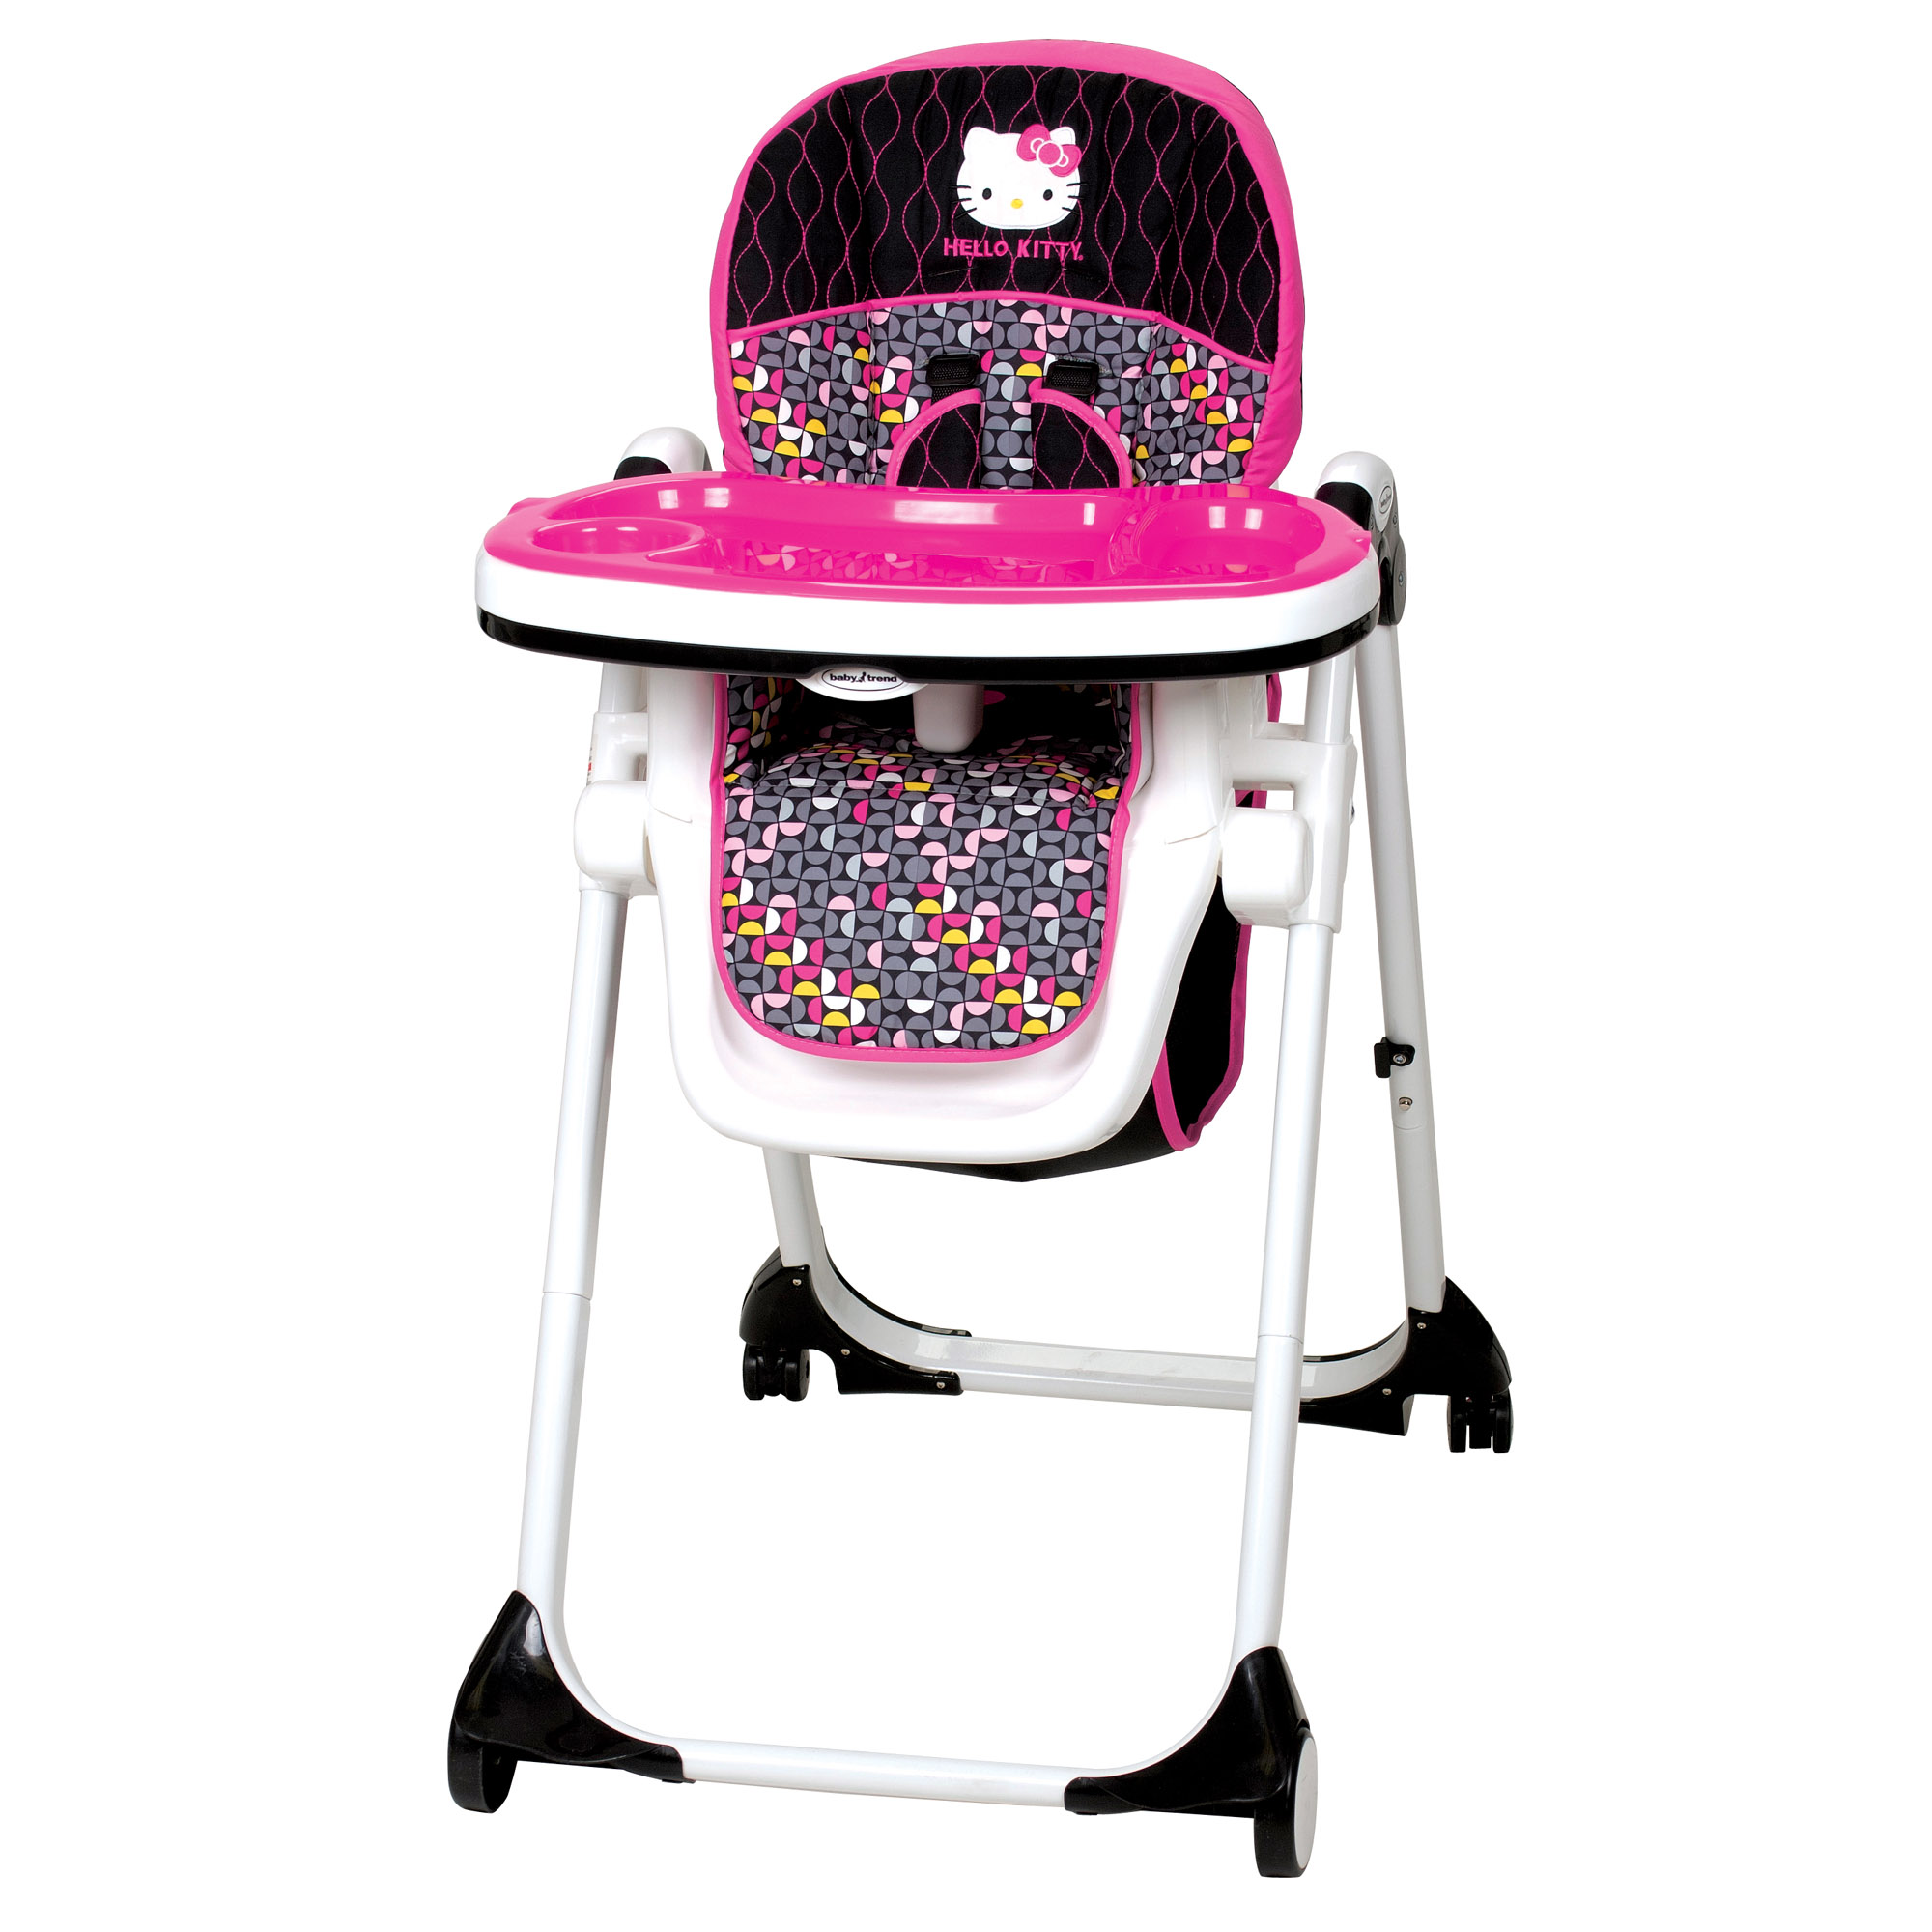 hello kitty desk chair fisher price singing mylift high pin wheel